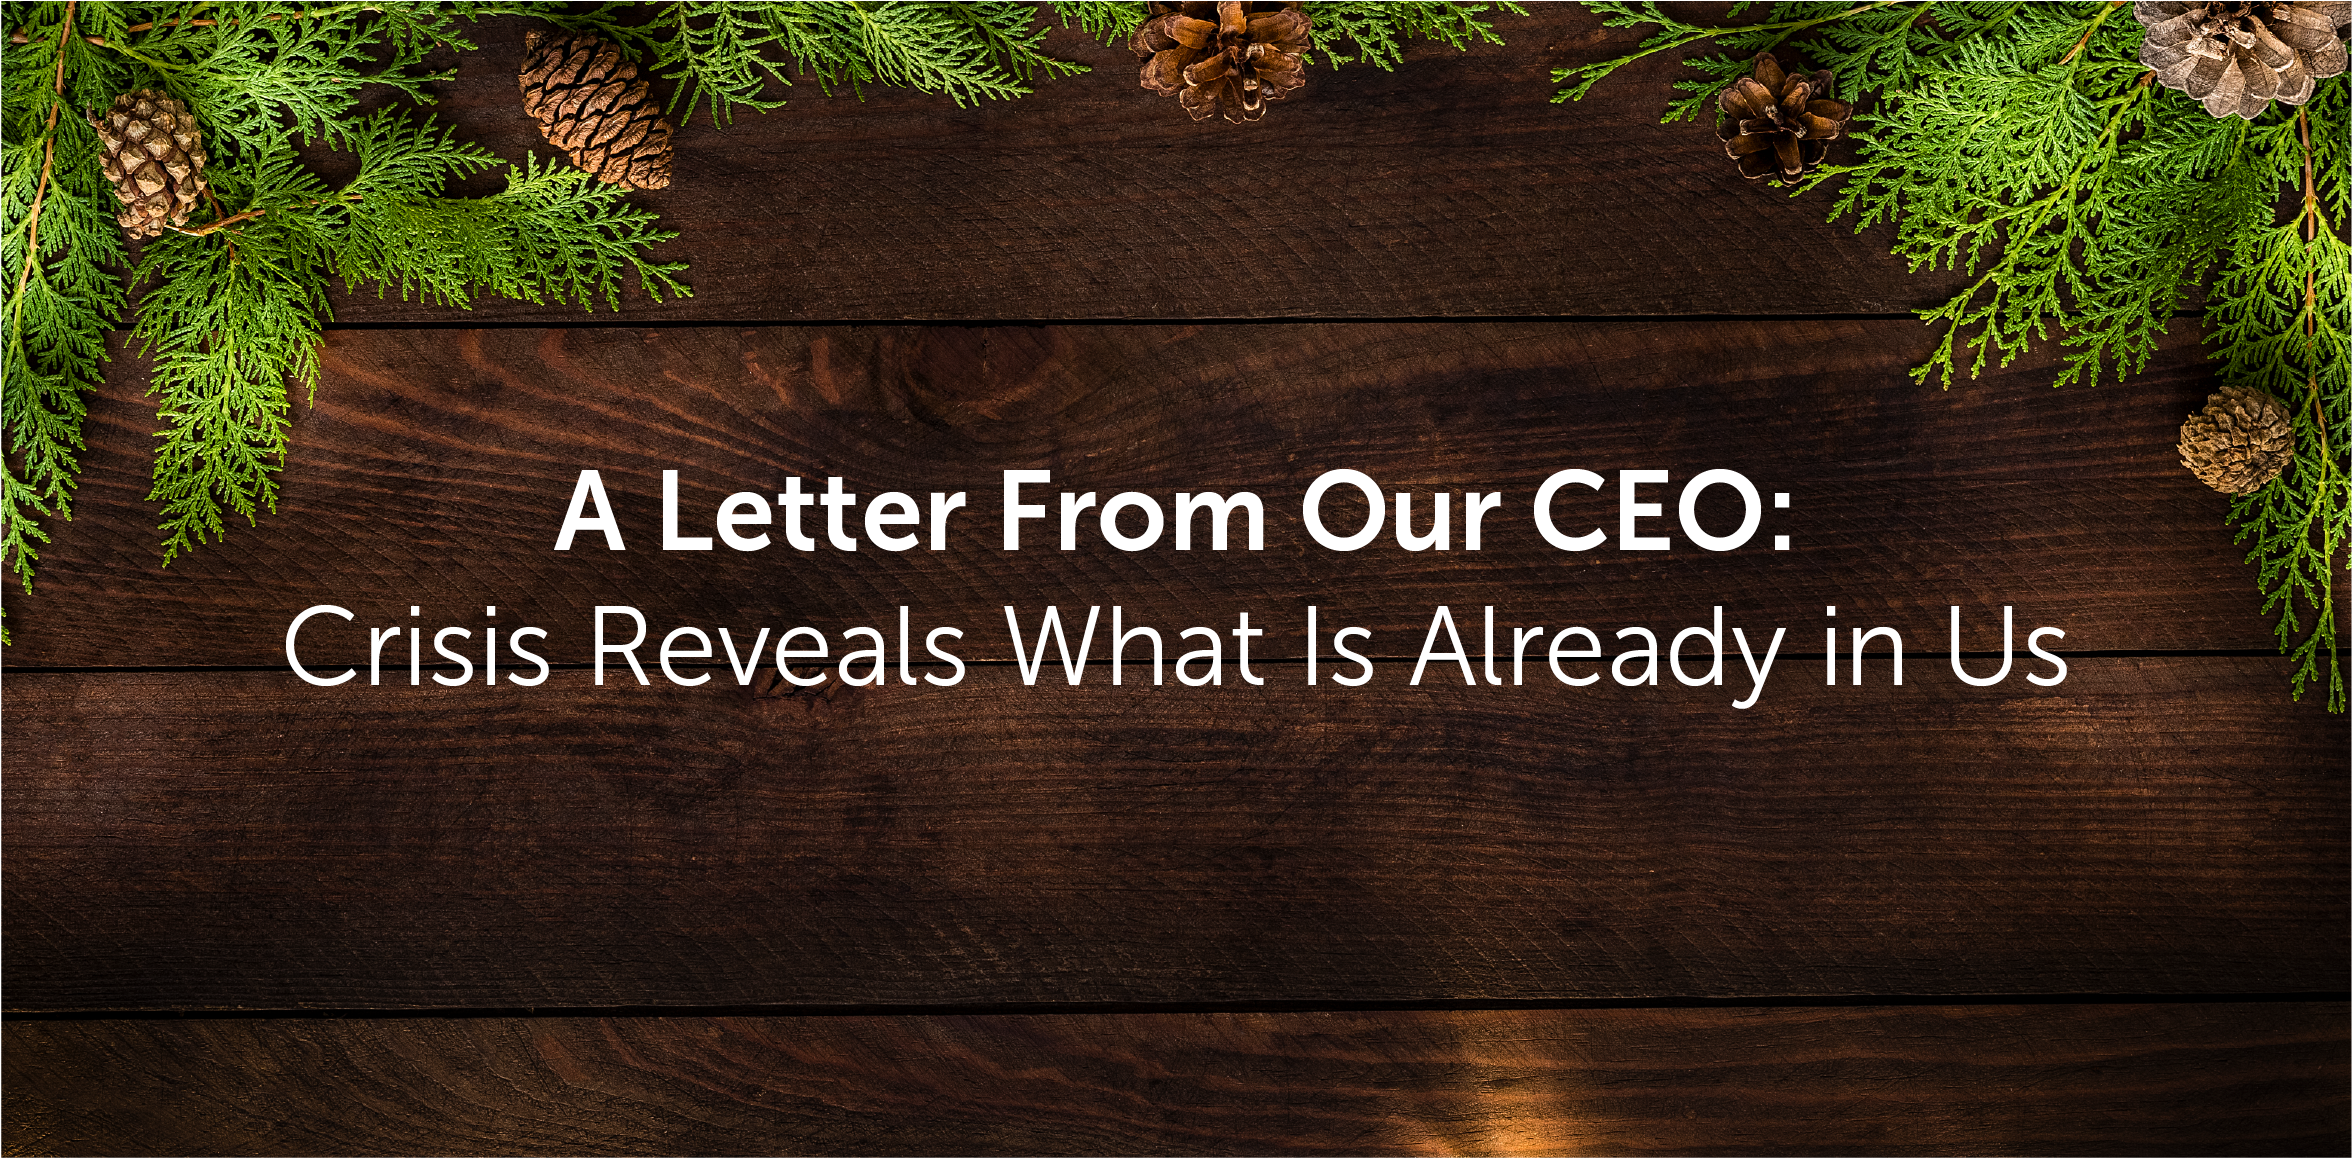 A Letter From Our CEO: Crisis Reveals What Is Already in Us